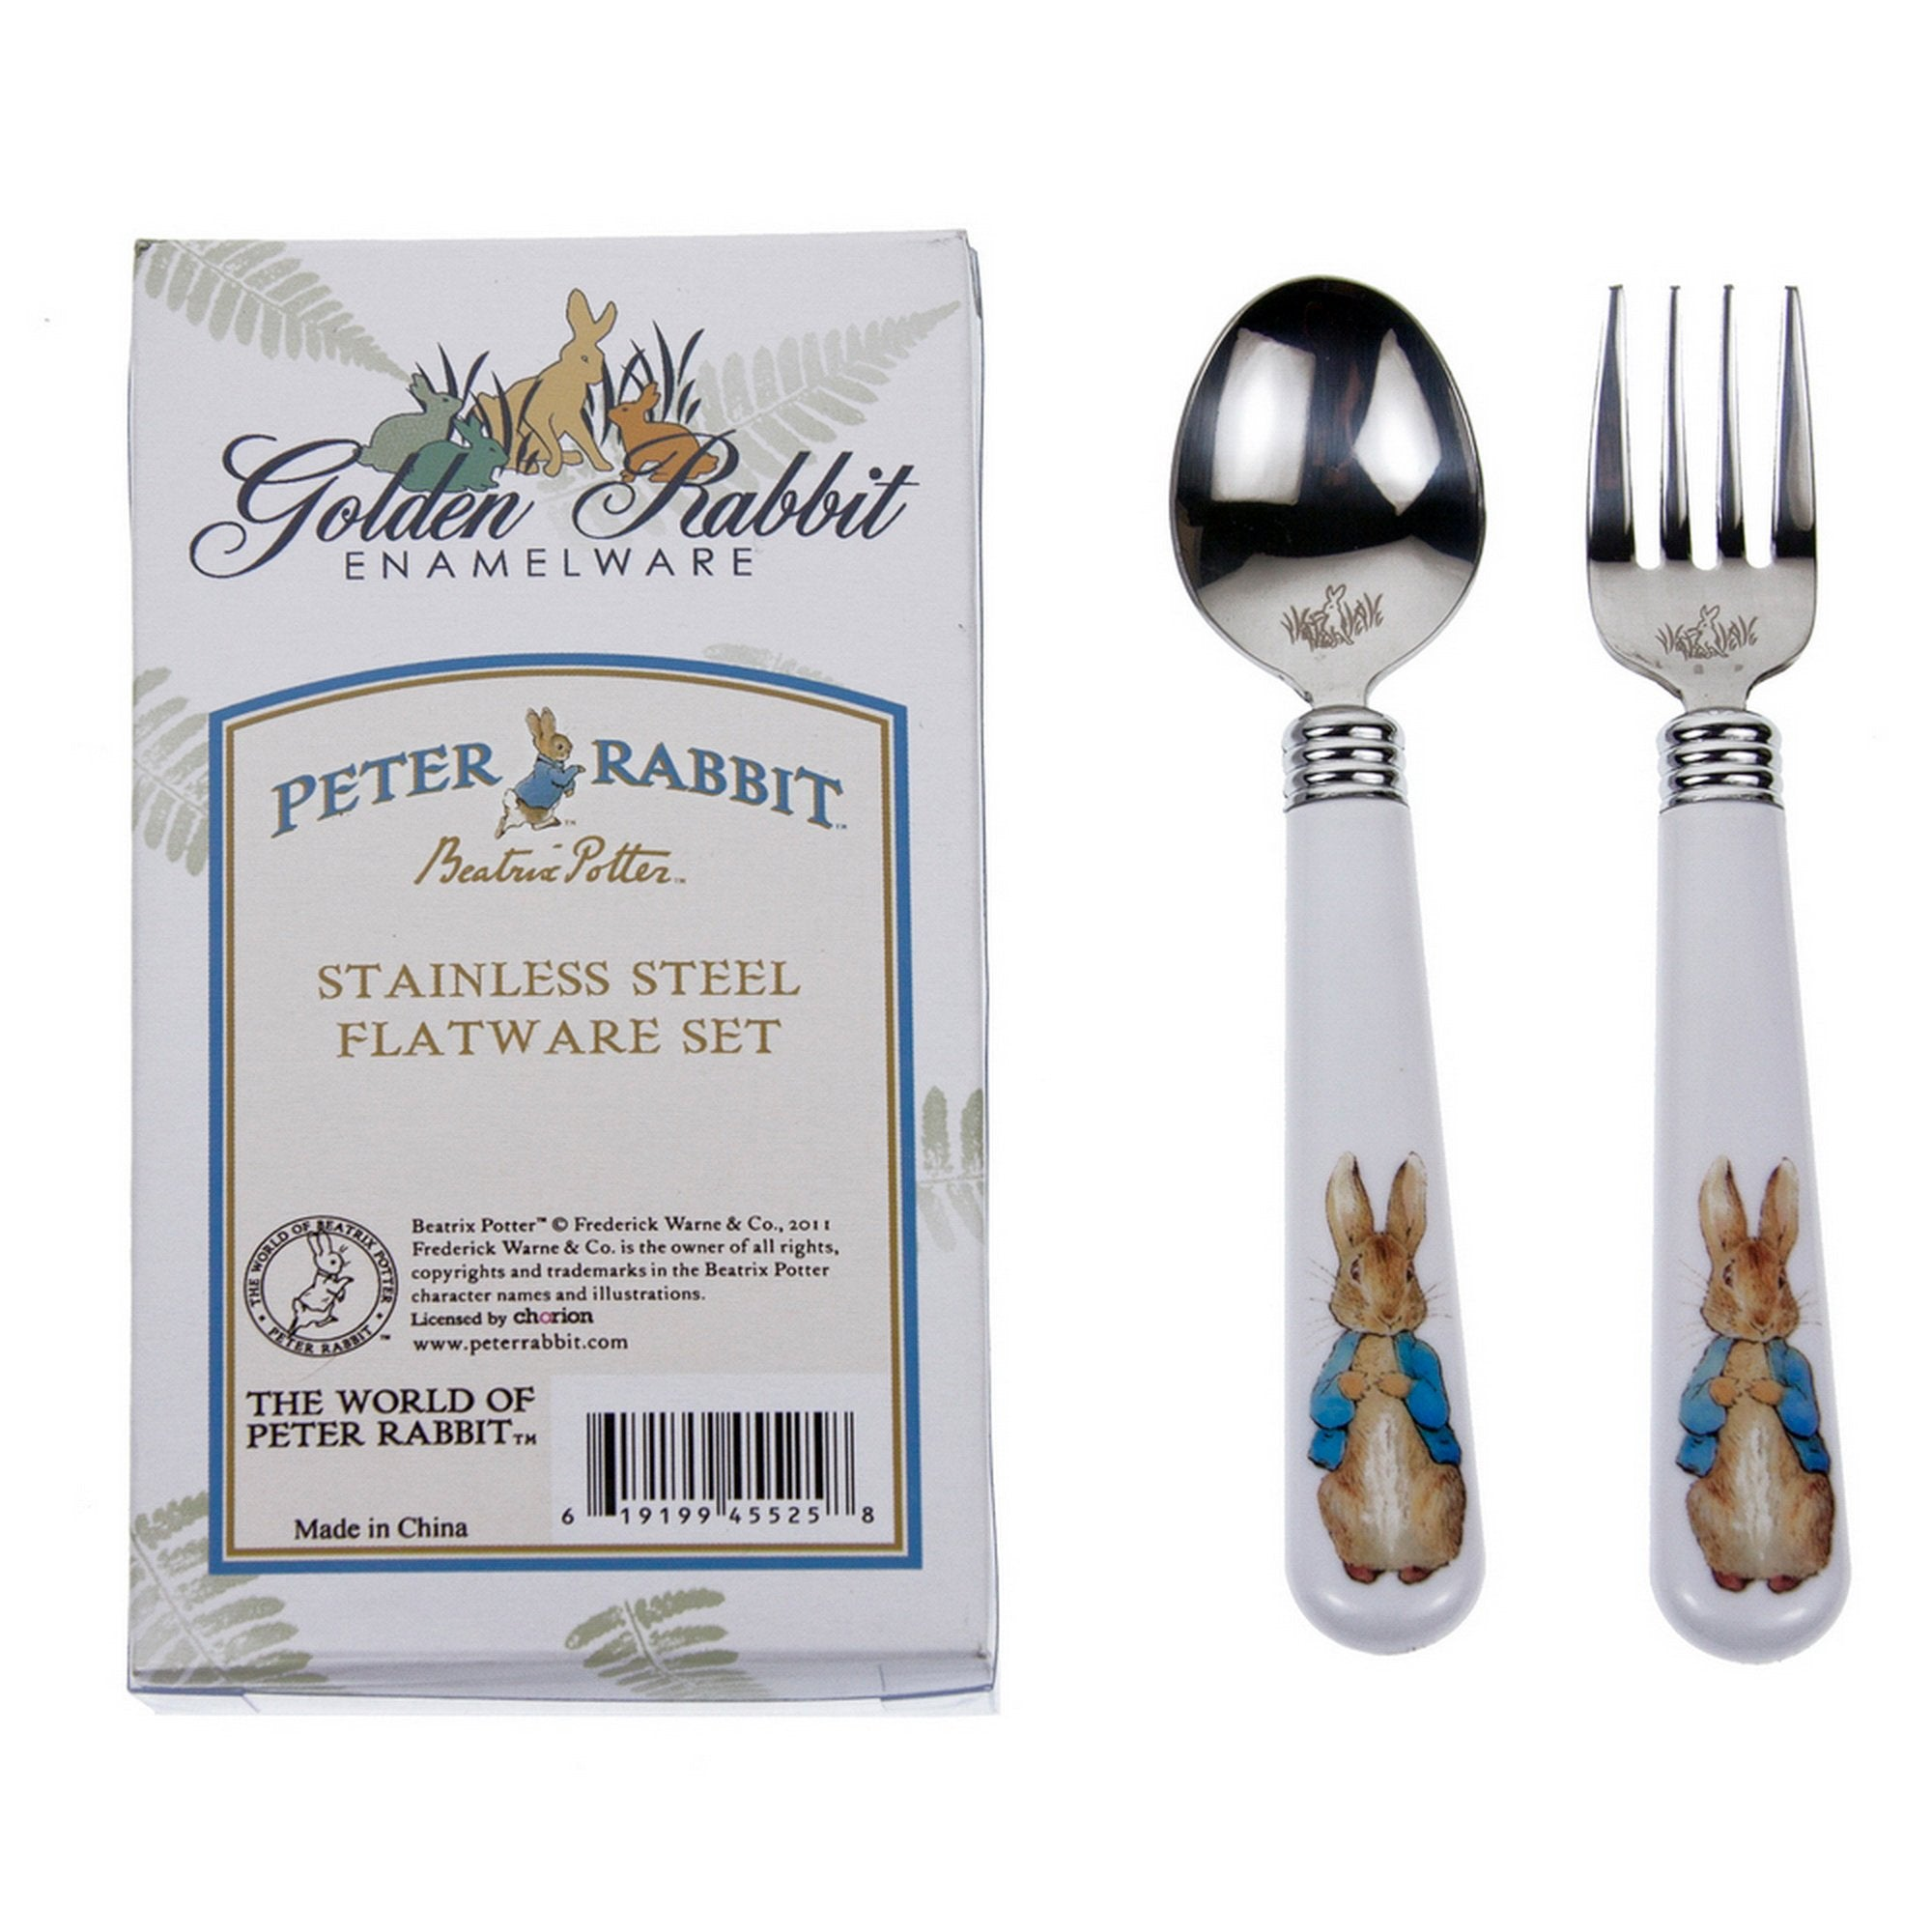 Peter Rabbit Baby Flatware